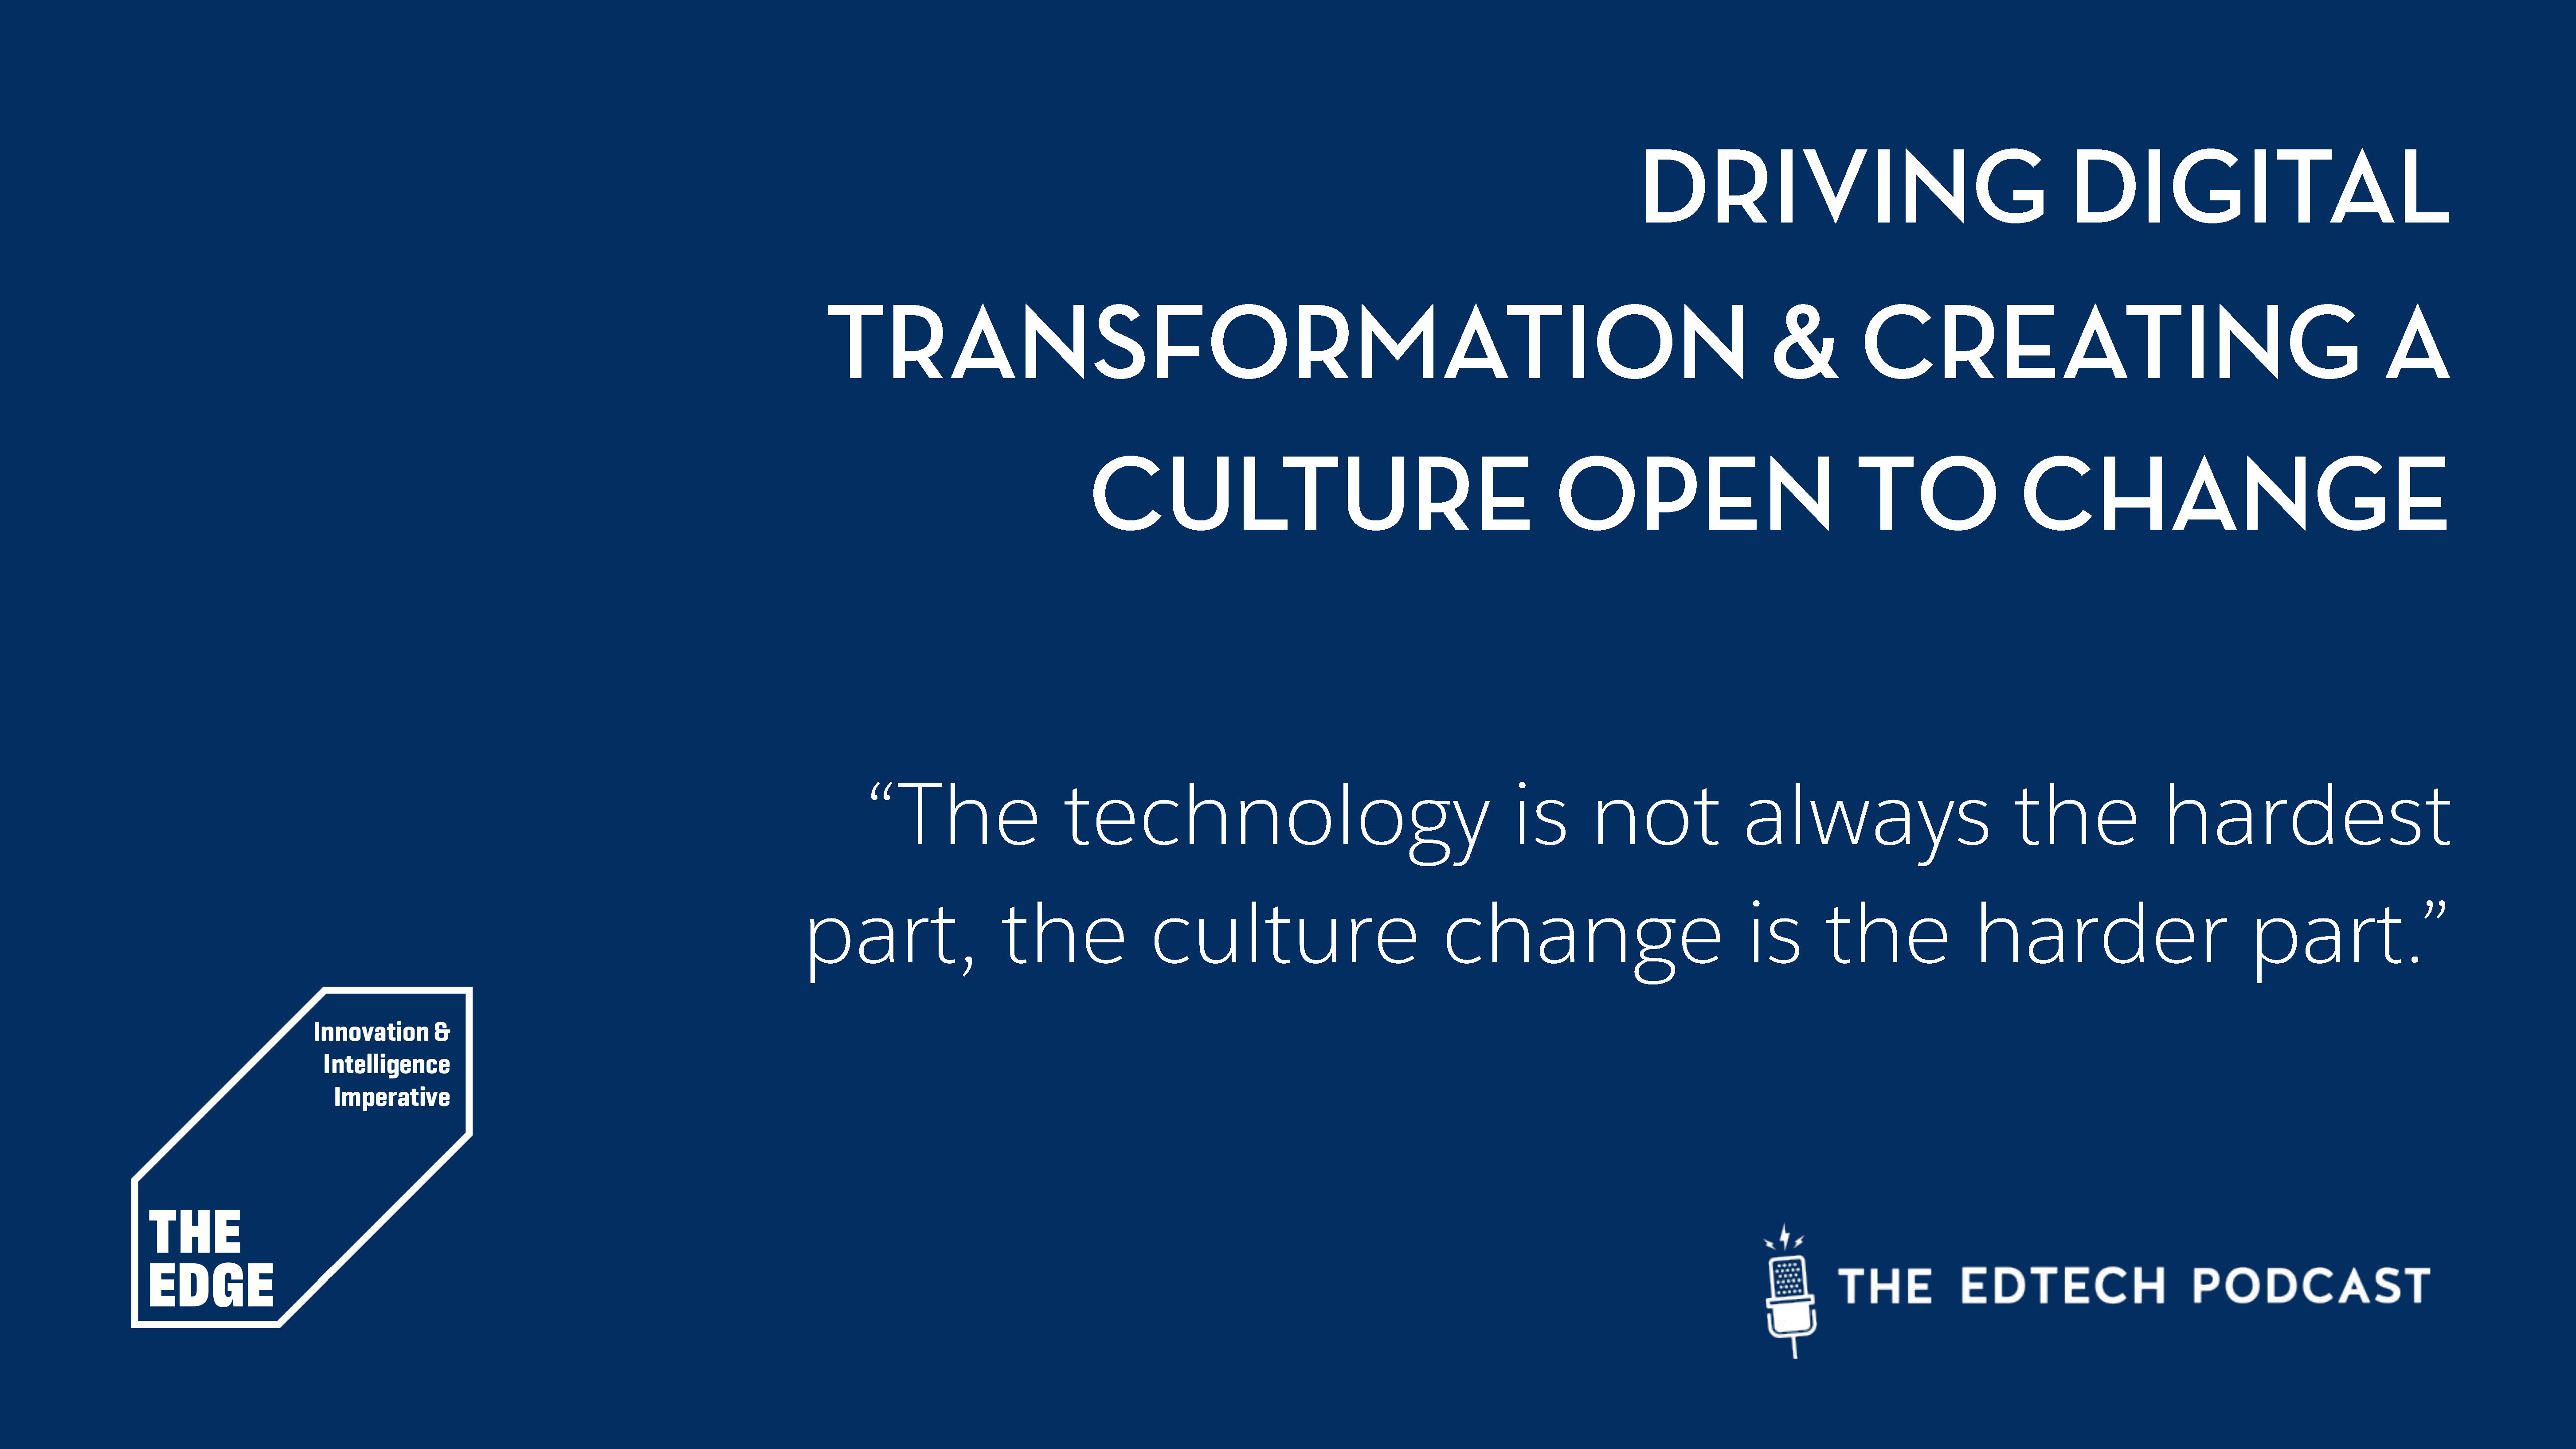 Episode 1 | Driving Digital Transformation & Creating a Culture Open to Change